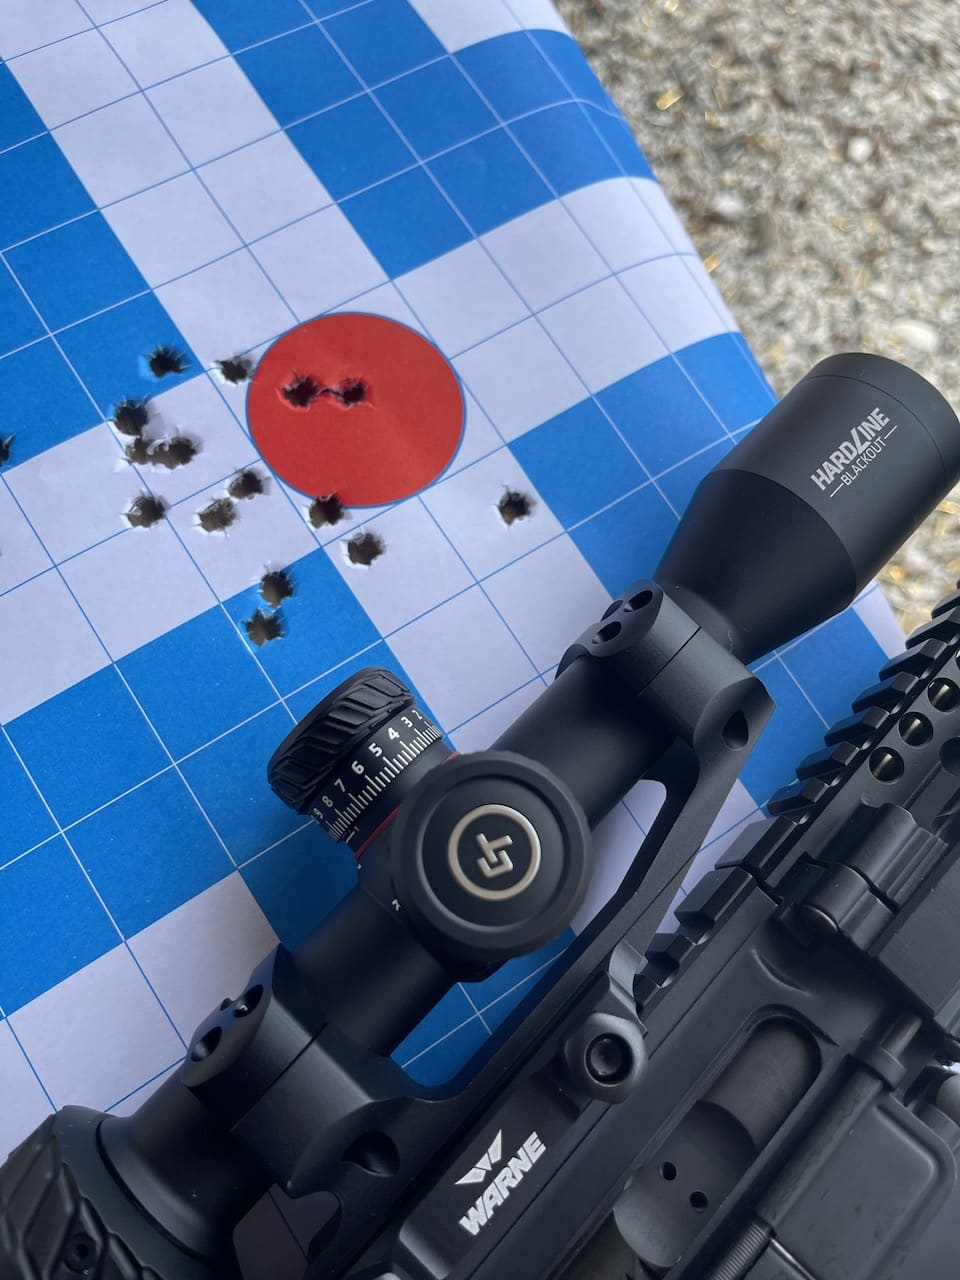 CT scope and Target